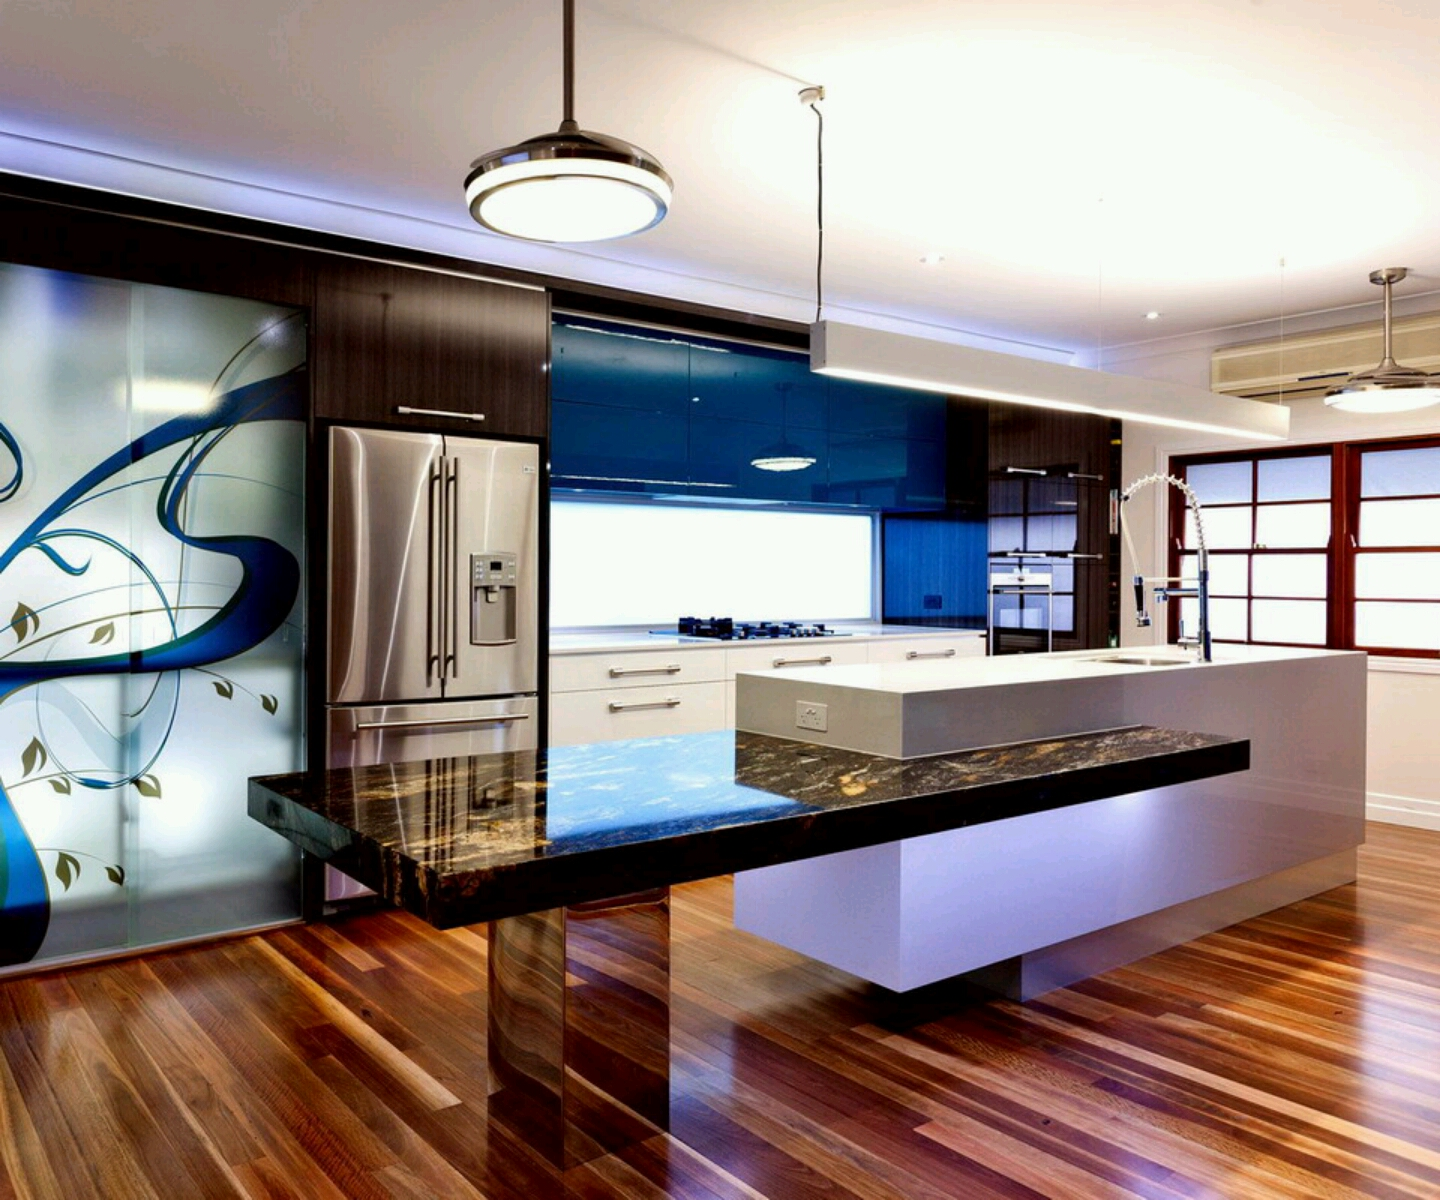 Modern kitchen designs 2013 interior decorating accessories for Kitchen interior decoration images